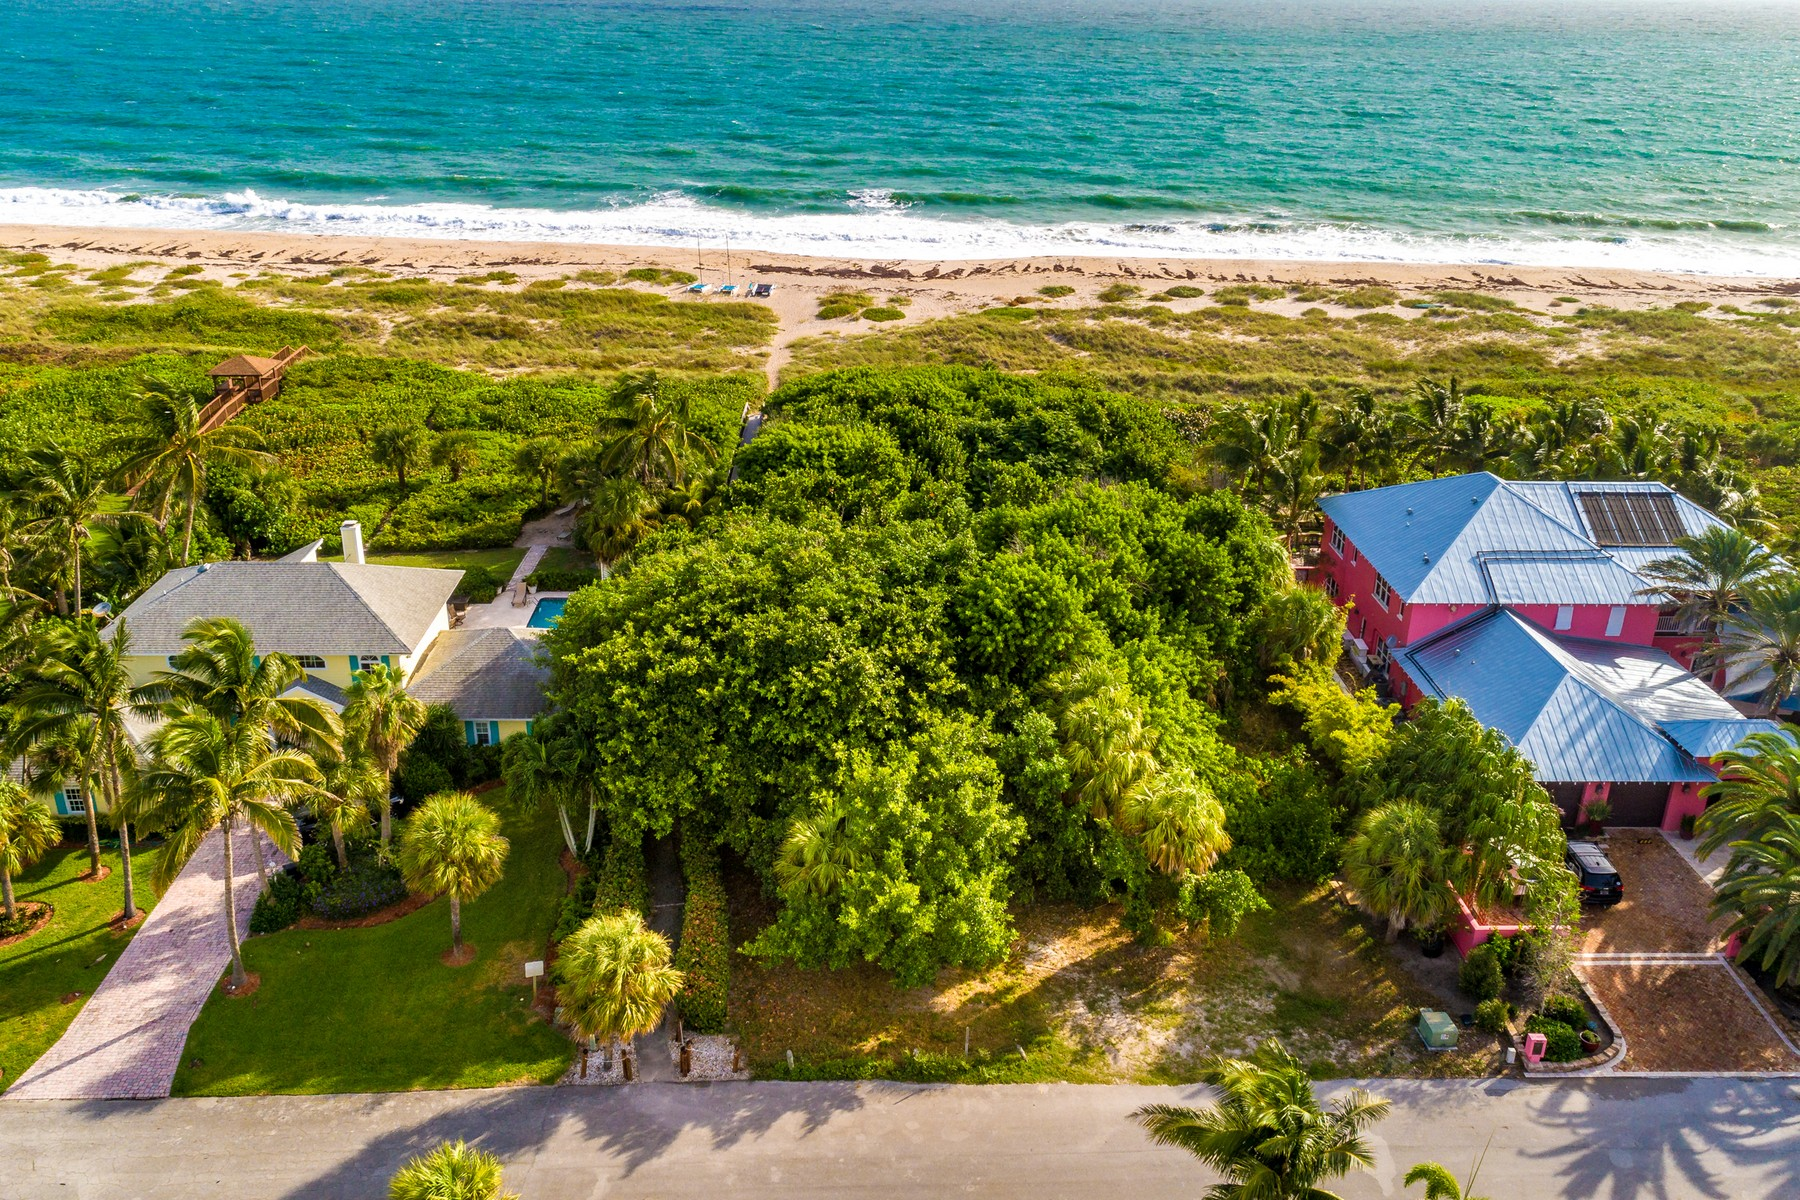 Property for Sale at Magnificent Oceanfront Homesite 920 Crescent Beach Road Vero Beach, Florida 32963 United States